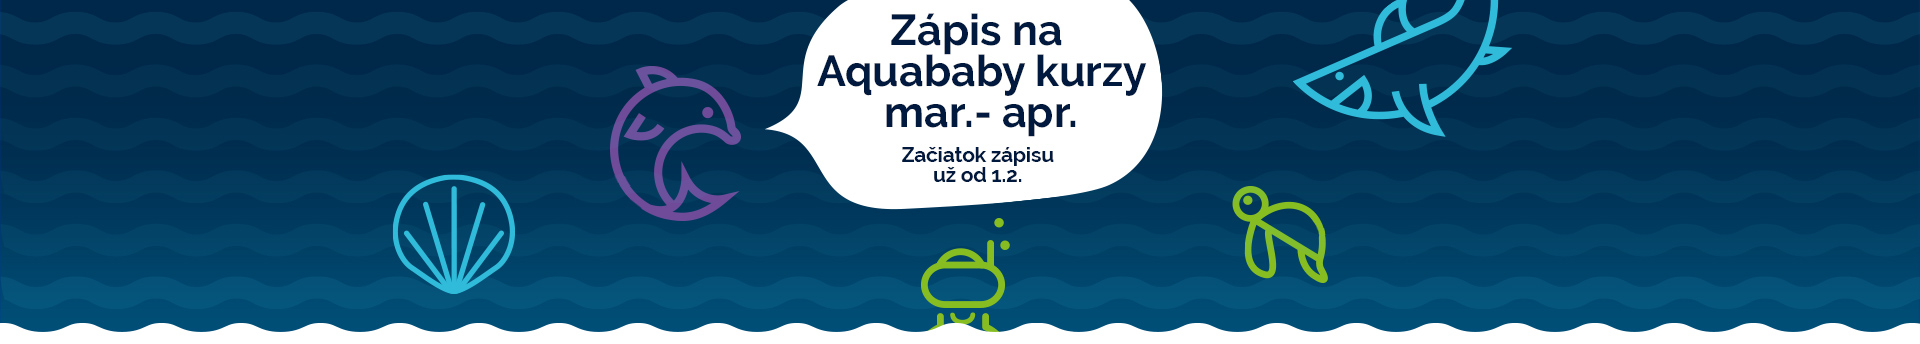 Zápis na AB MAR-APR